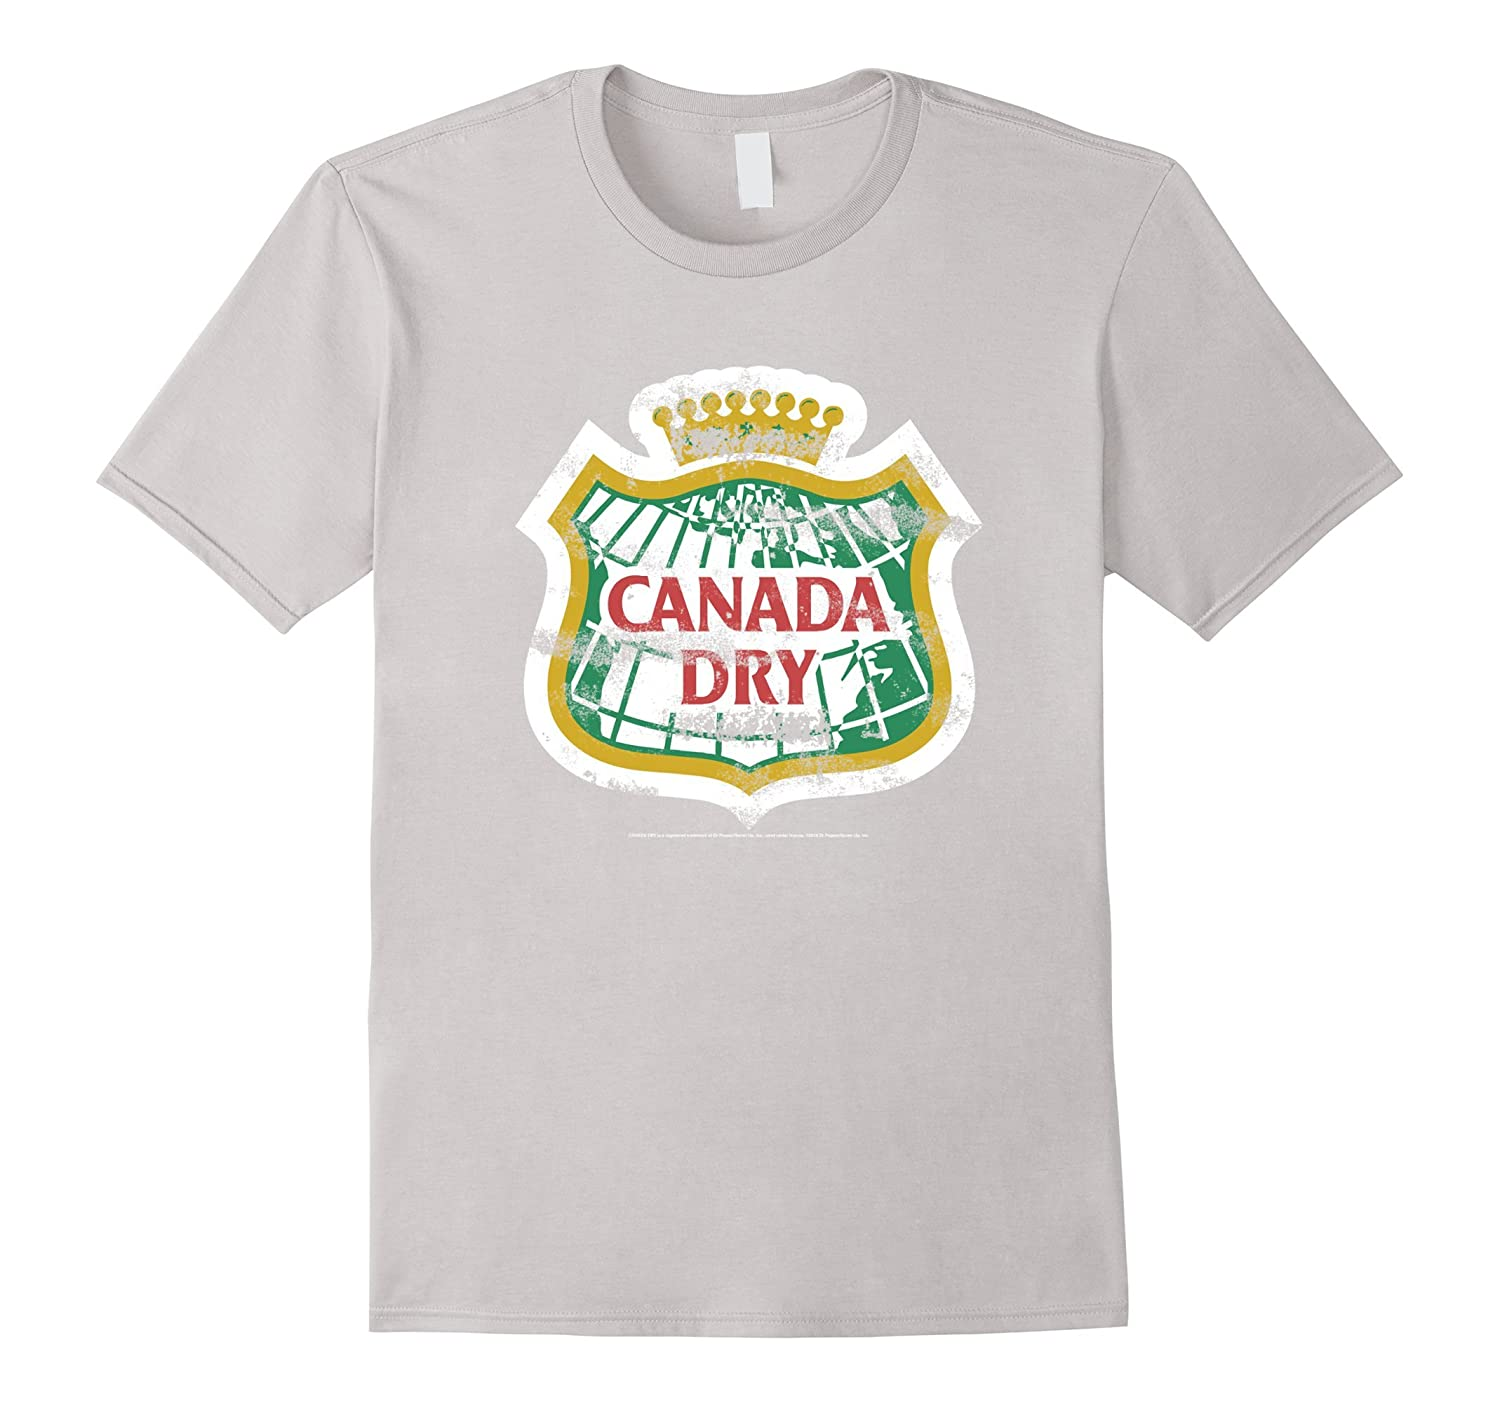 Canada Dry T-Shirt | Classic Look style # 25289-FL